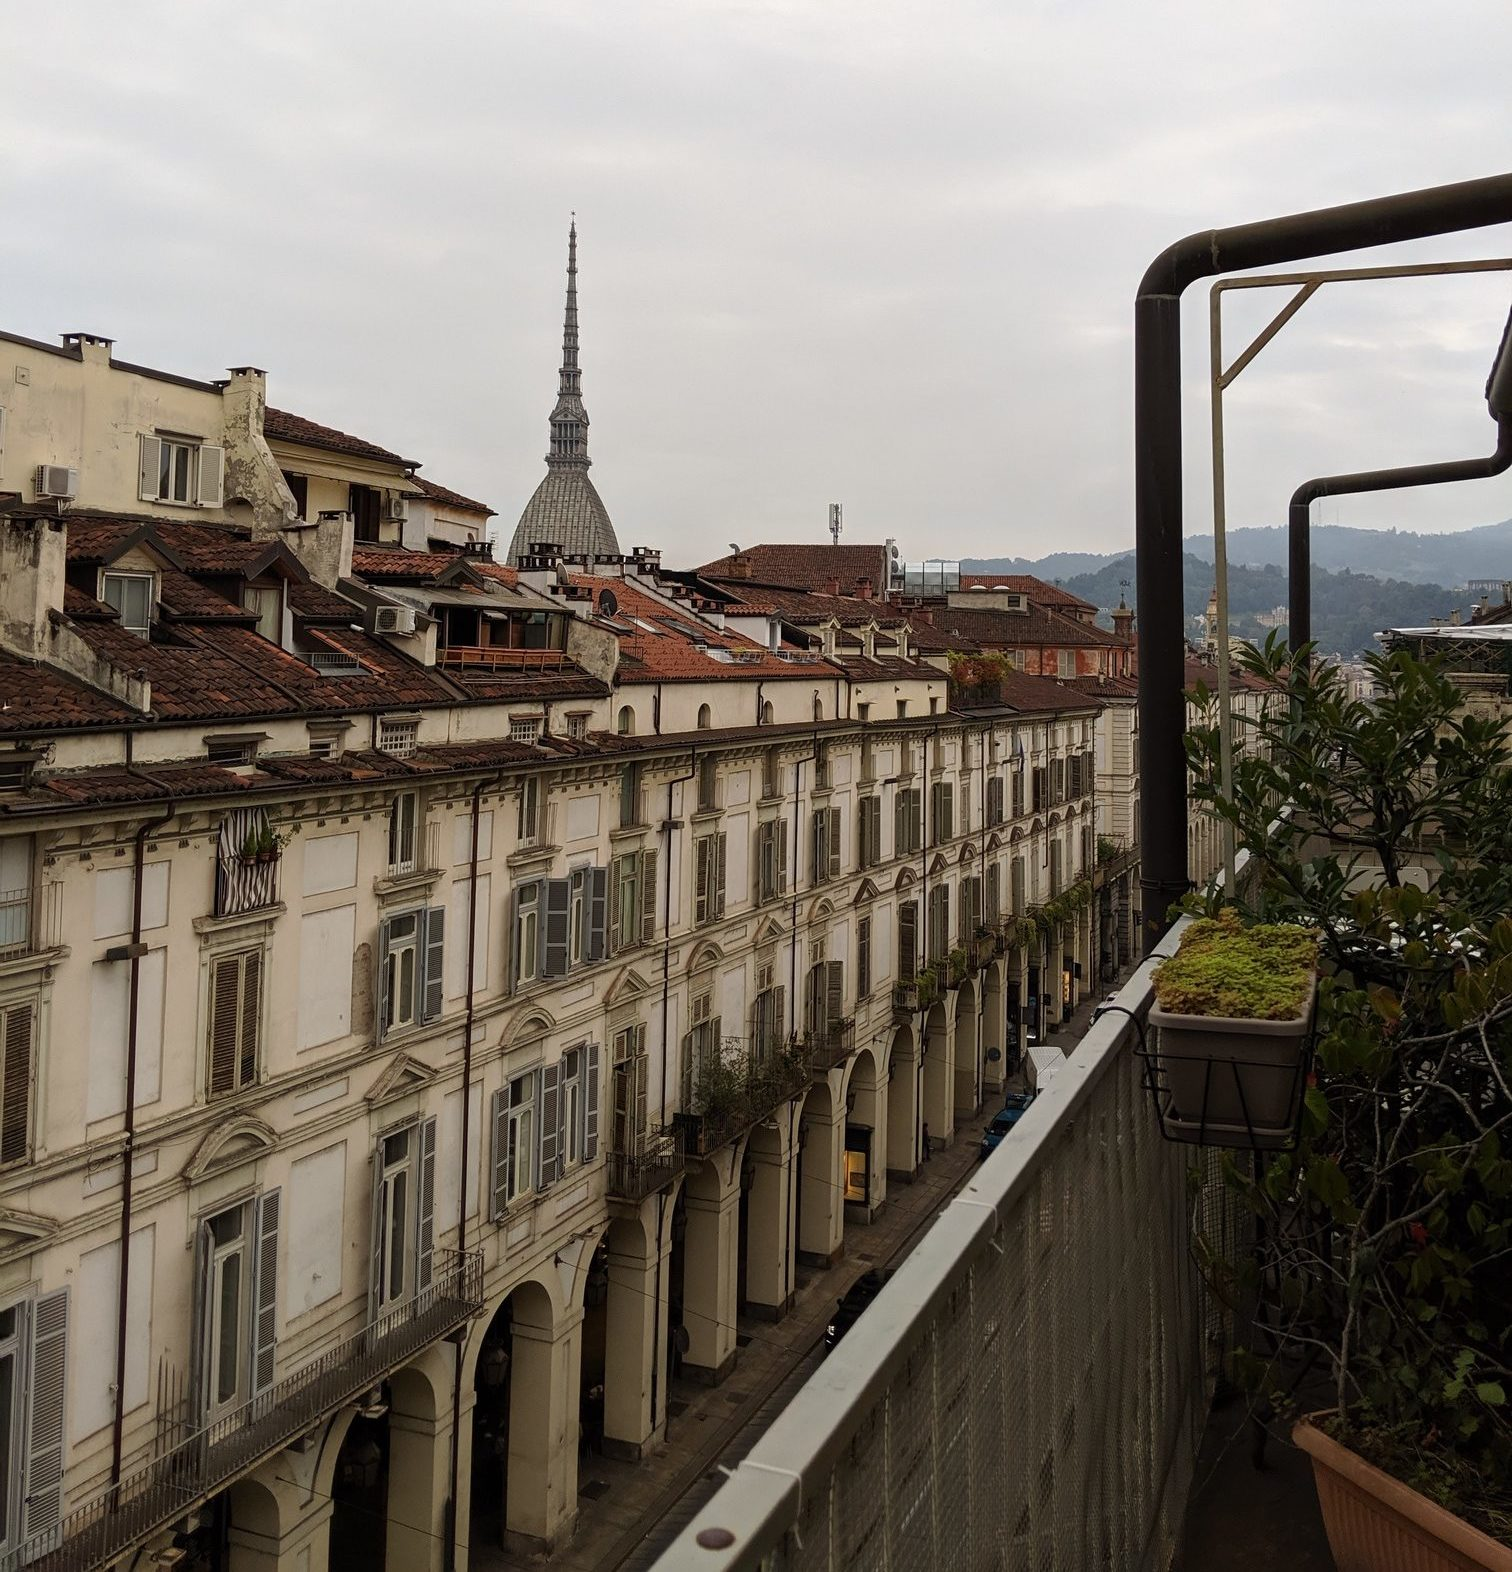 turin rooftops with mountains in the background